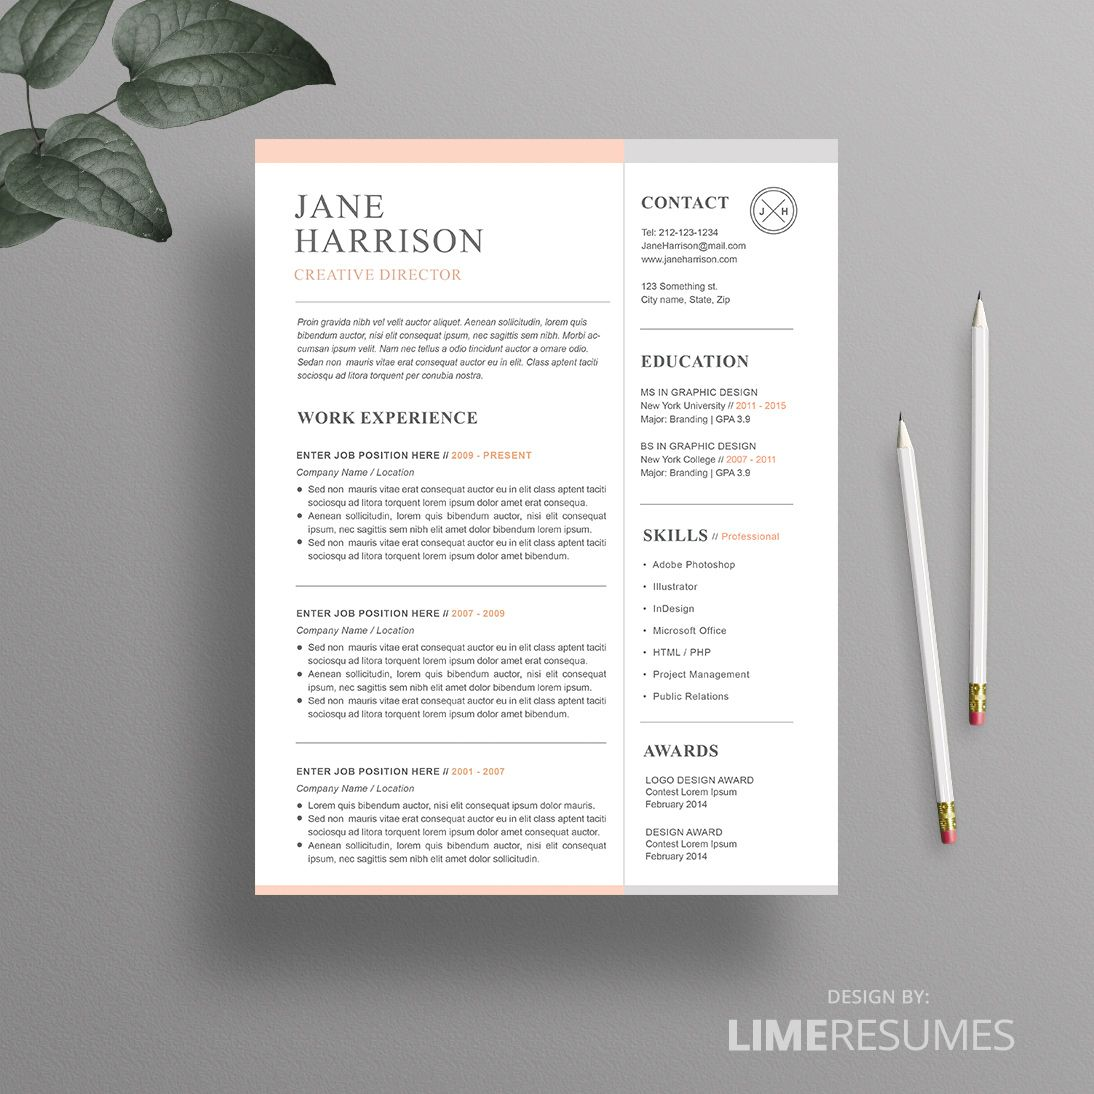 resume template shops professional resume and words resume template a matching cover letter and reference page for microsoft word professional cv